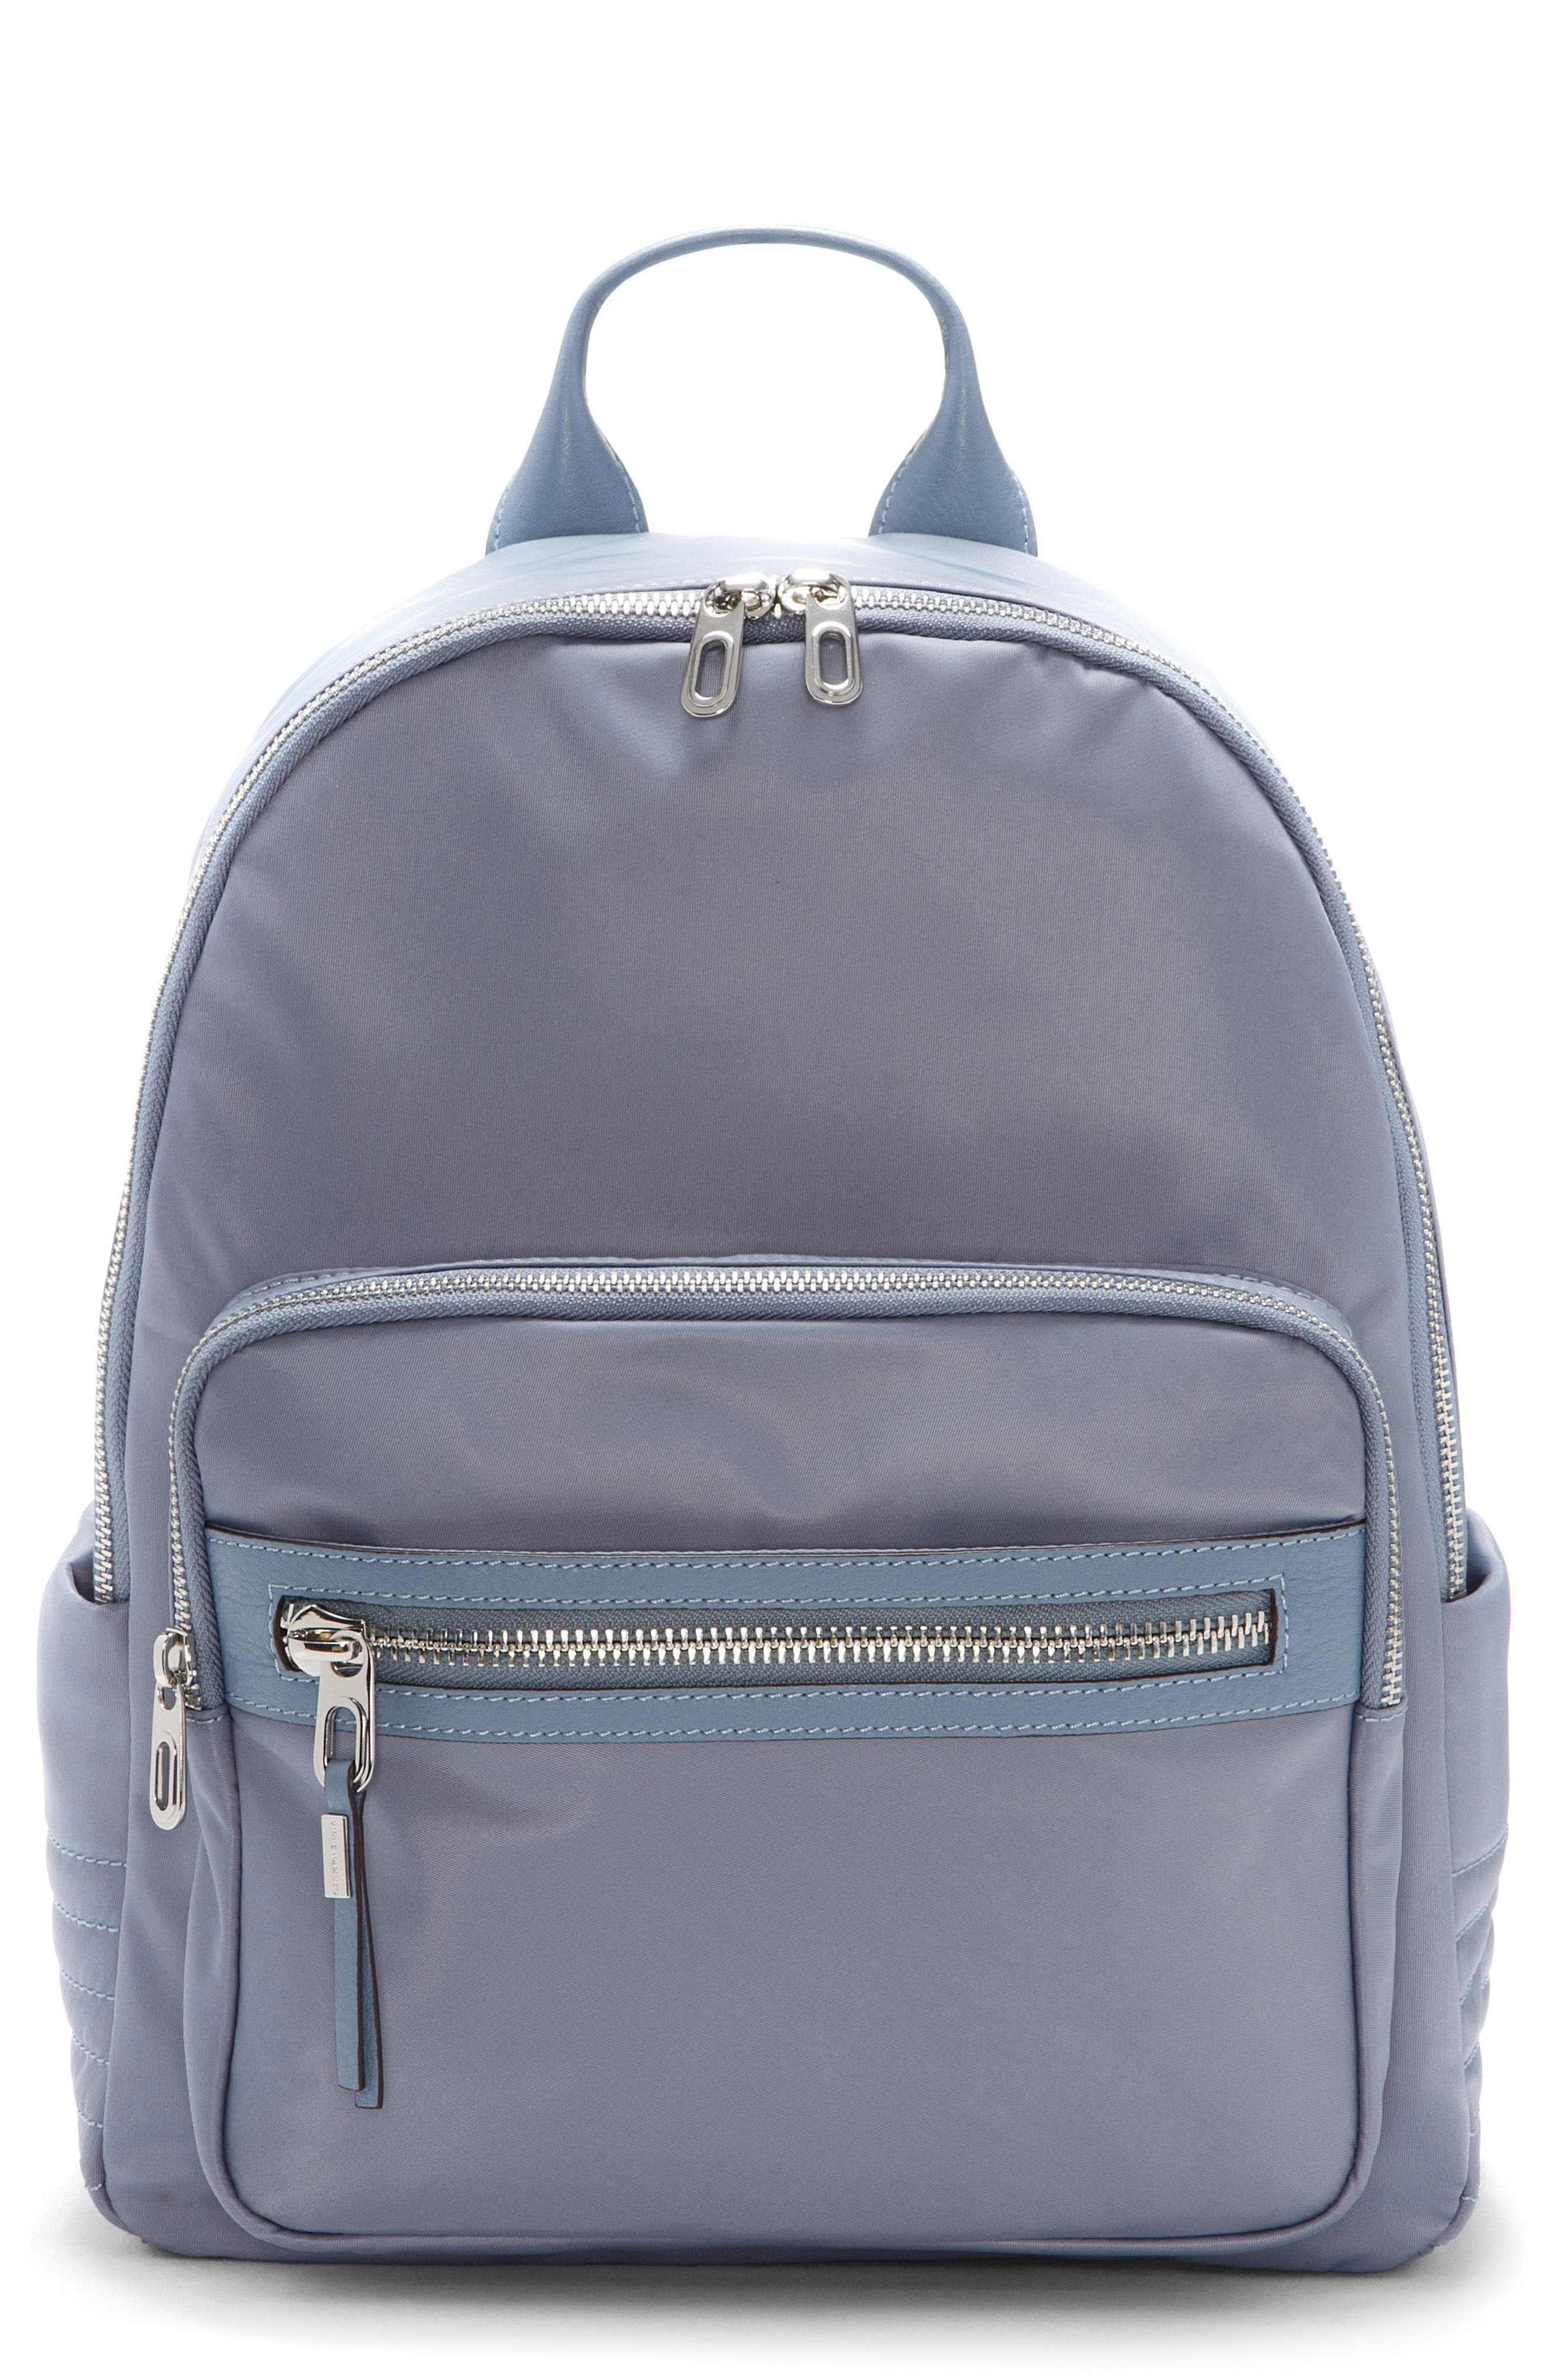 Action Nylon Backpack,                         Main,                         color, Serenity Blue